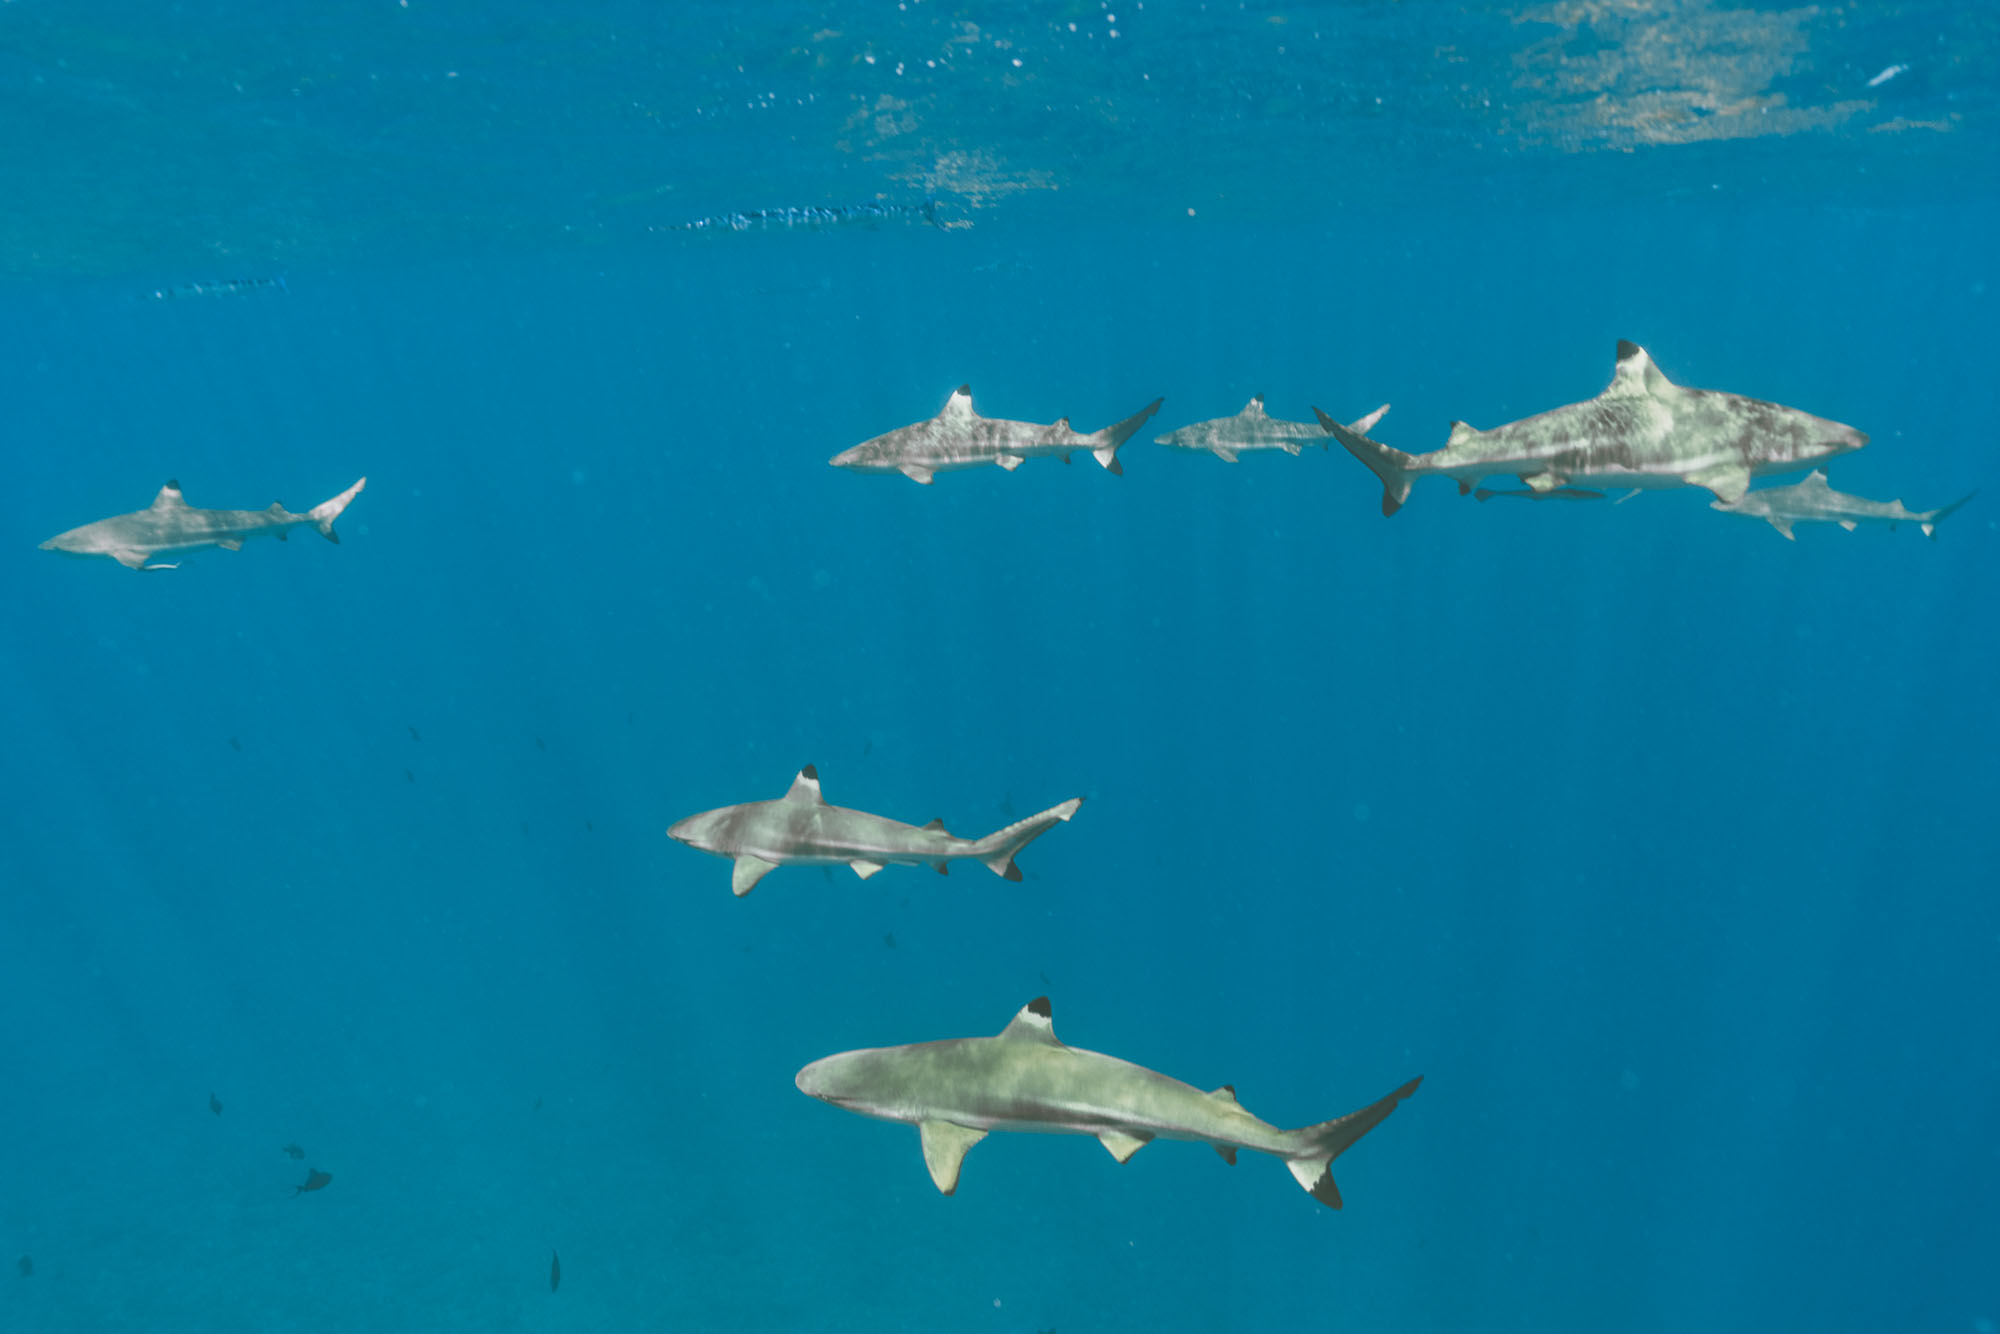 Swimming with sharks in Bora Bora Tahiti for our honeymoon via @finduslost